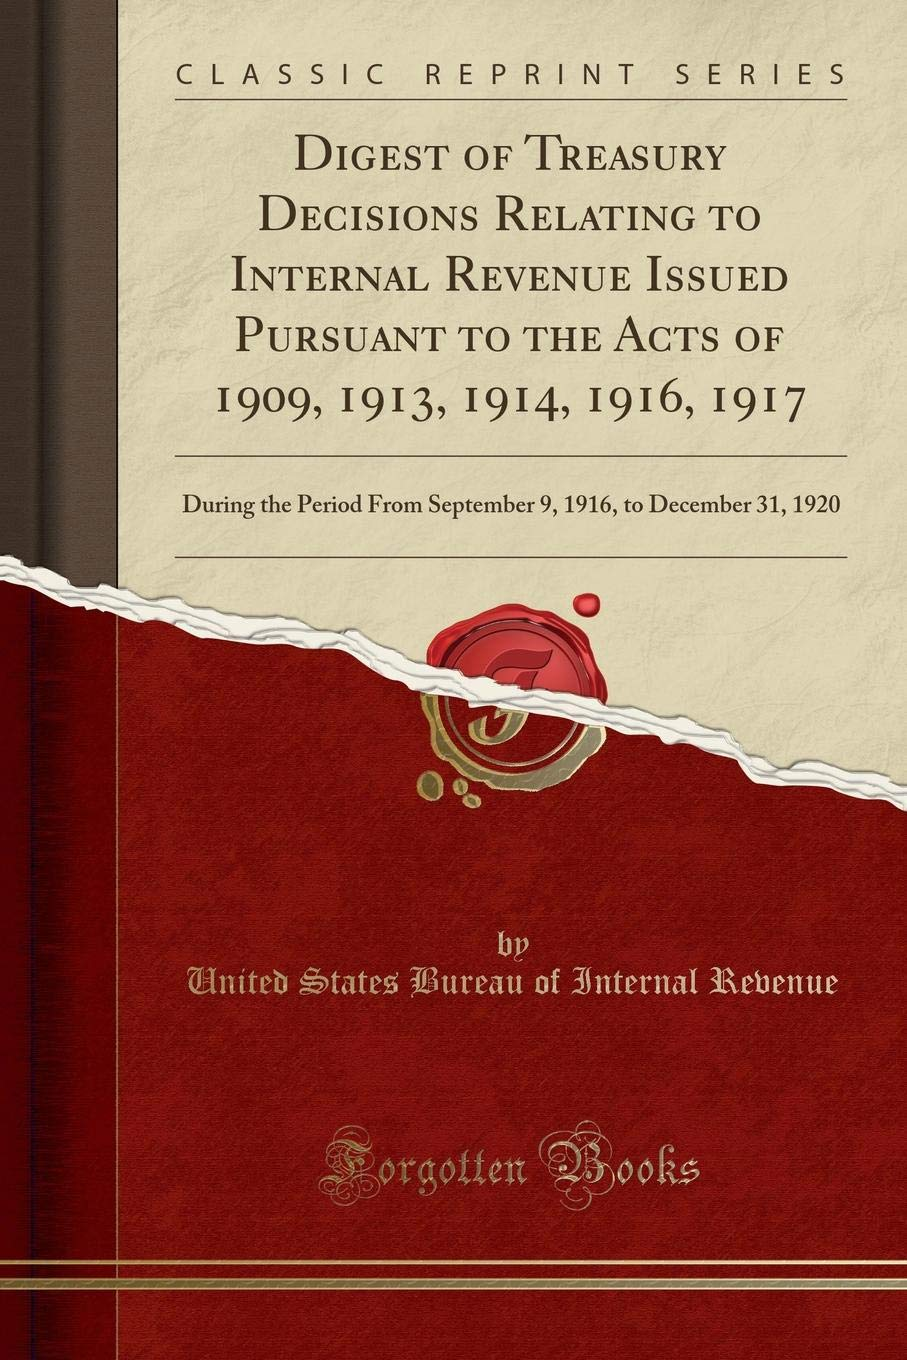 Digest of Treasury Decisions Relating to Internal Revenue Issued Pursuant to the Acts of 1909, 1913, 1914, 1916, 1917: During the Period From September 9, 1916, to December 31, 1920 (Classic Reprint) ebook